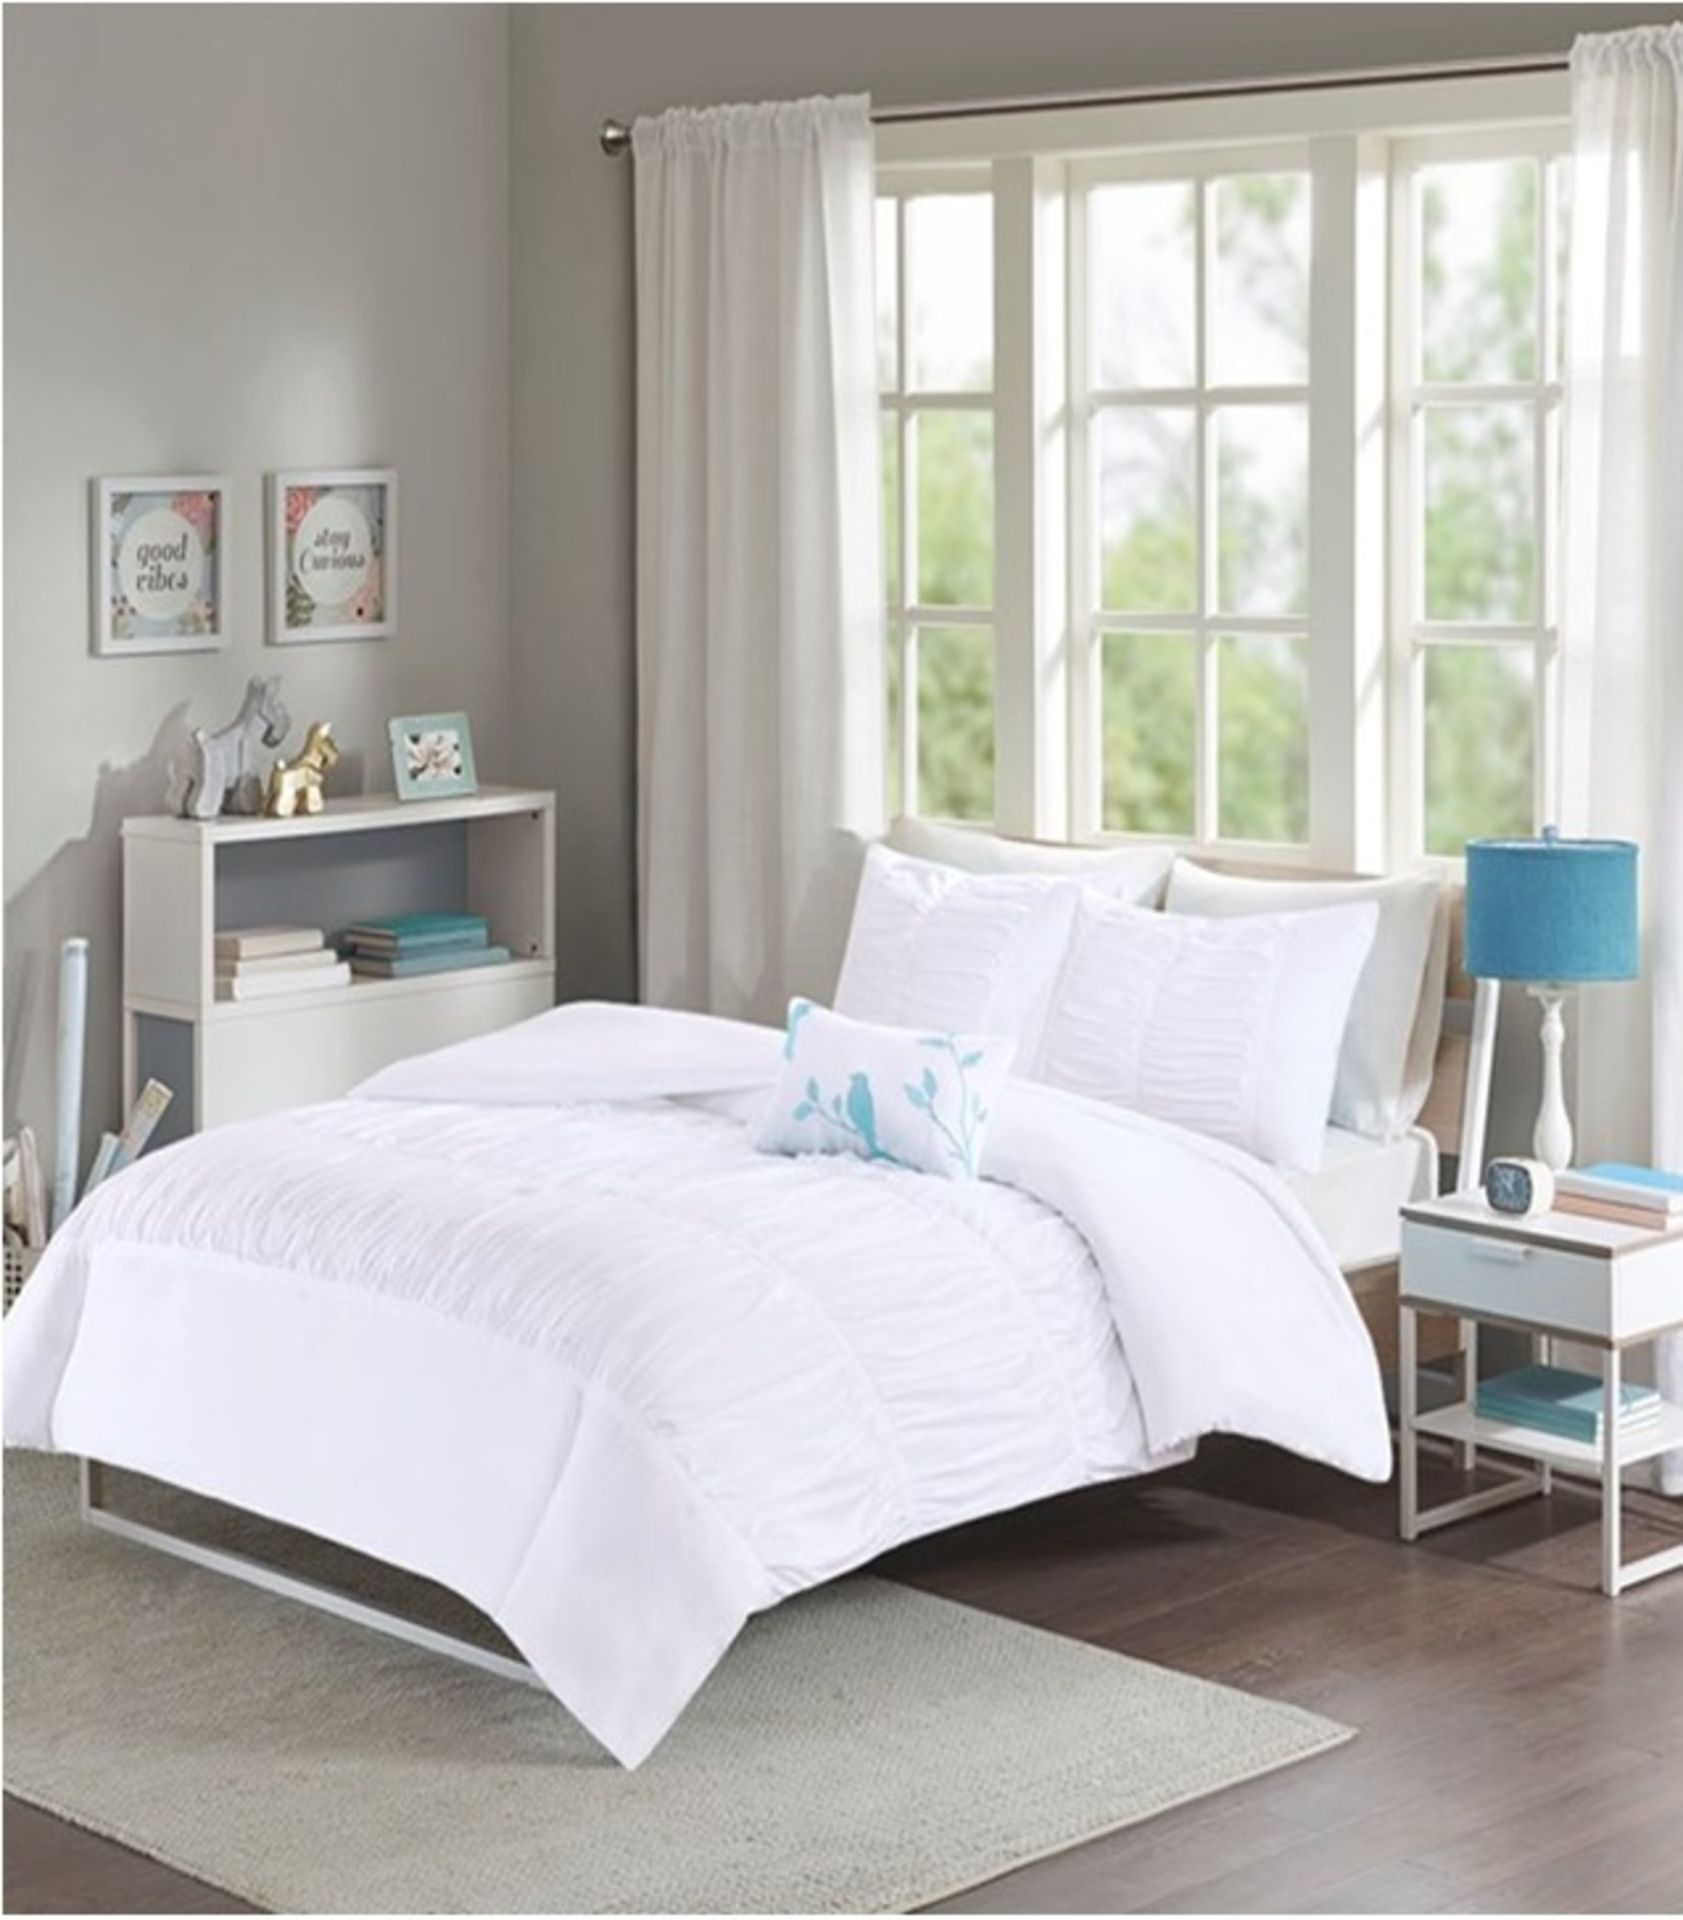 Lot 61 - 1 x Madison Park Mirimar Double Duvet Set White - Product Code MP12-0023UK (Brand New - RRP £39.99)